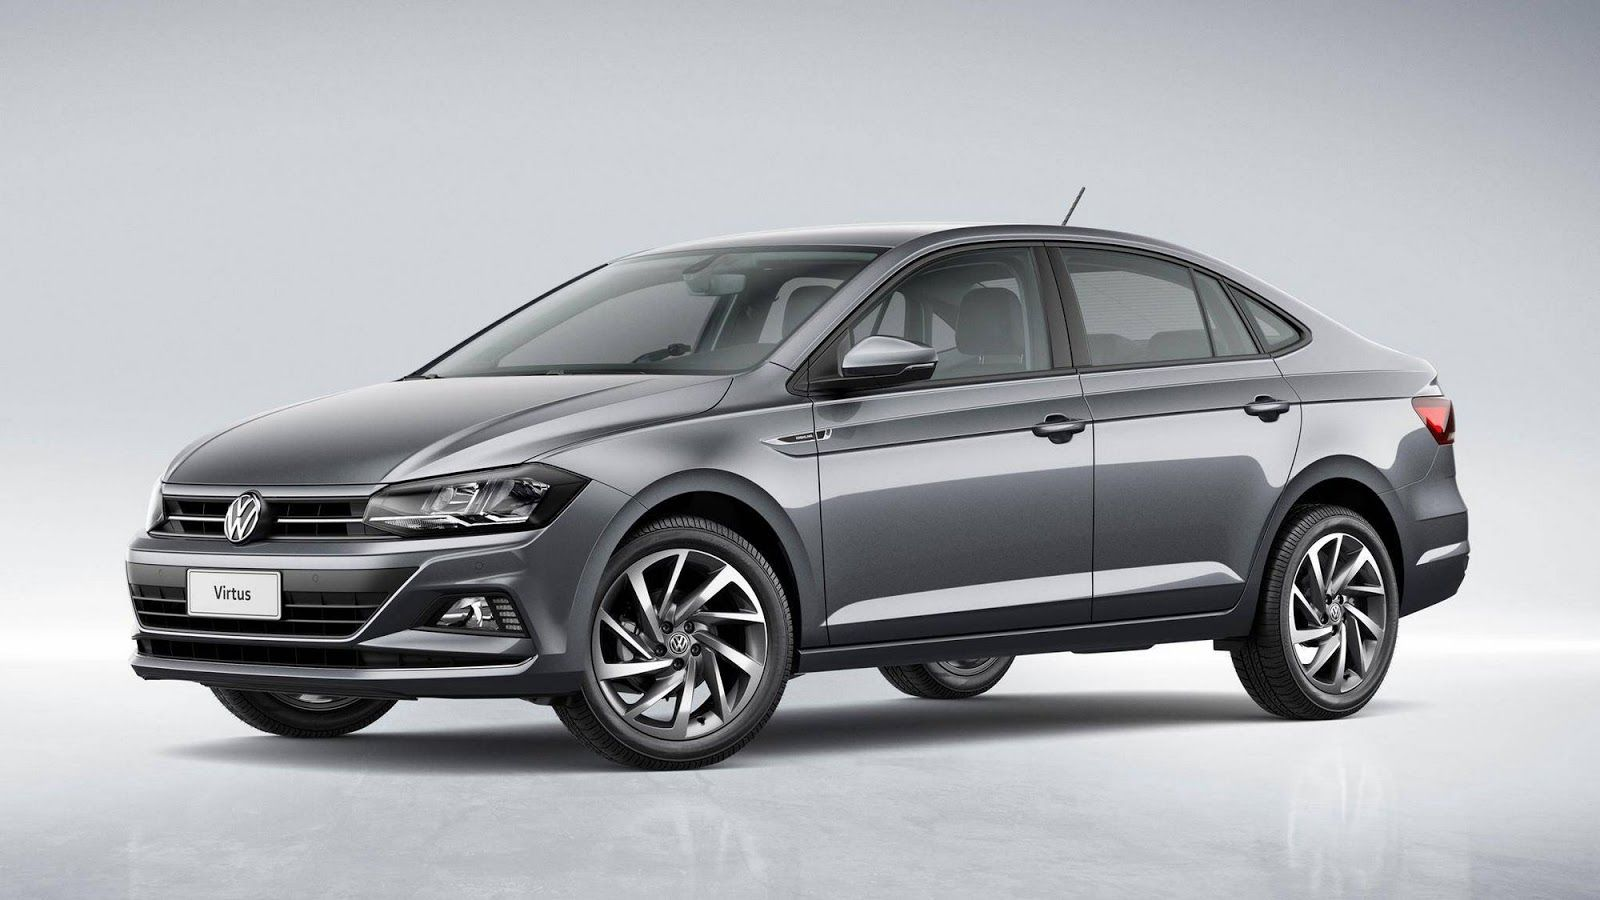 Volkswagen Vento 2021 India Performance And New Engine In 2020 Volkswagen Audi Cars Car